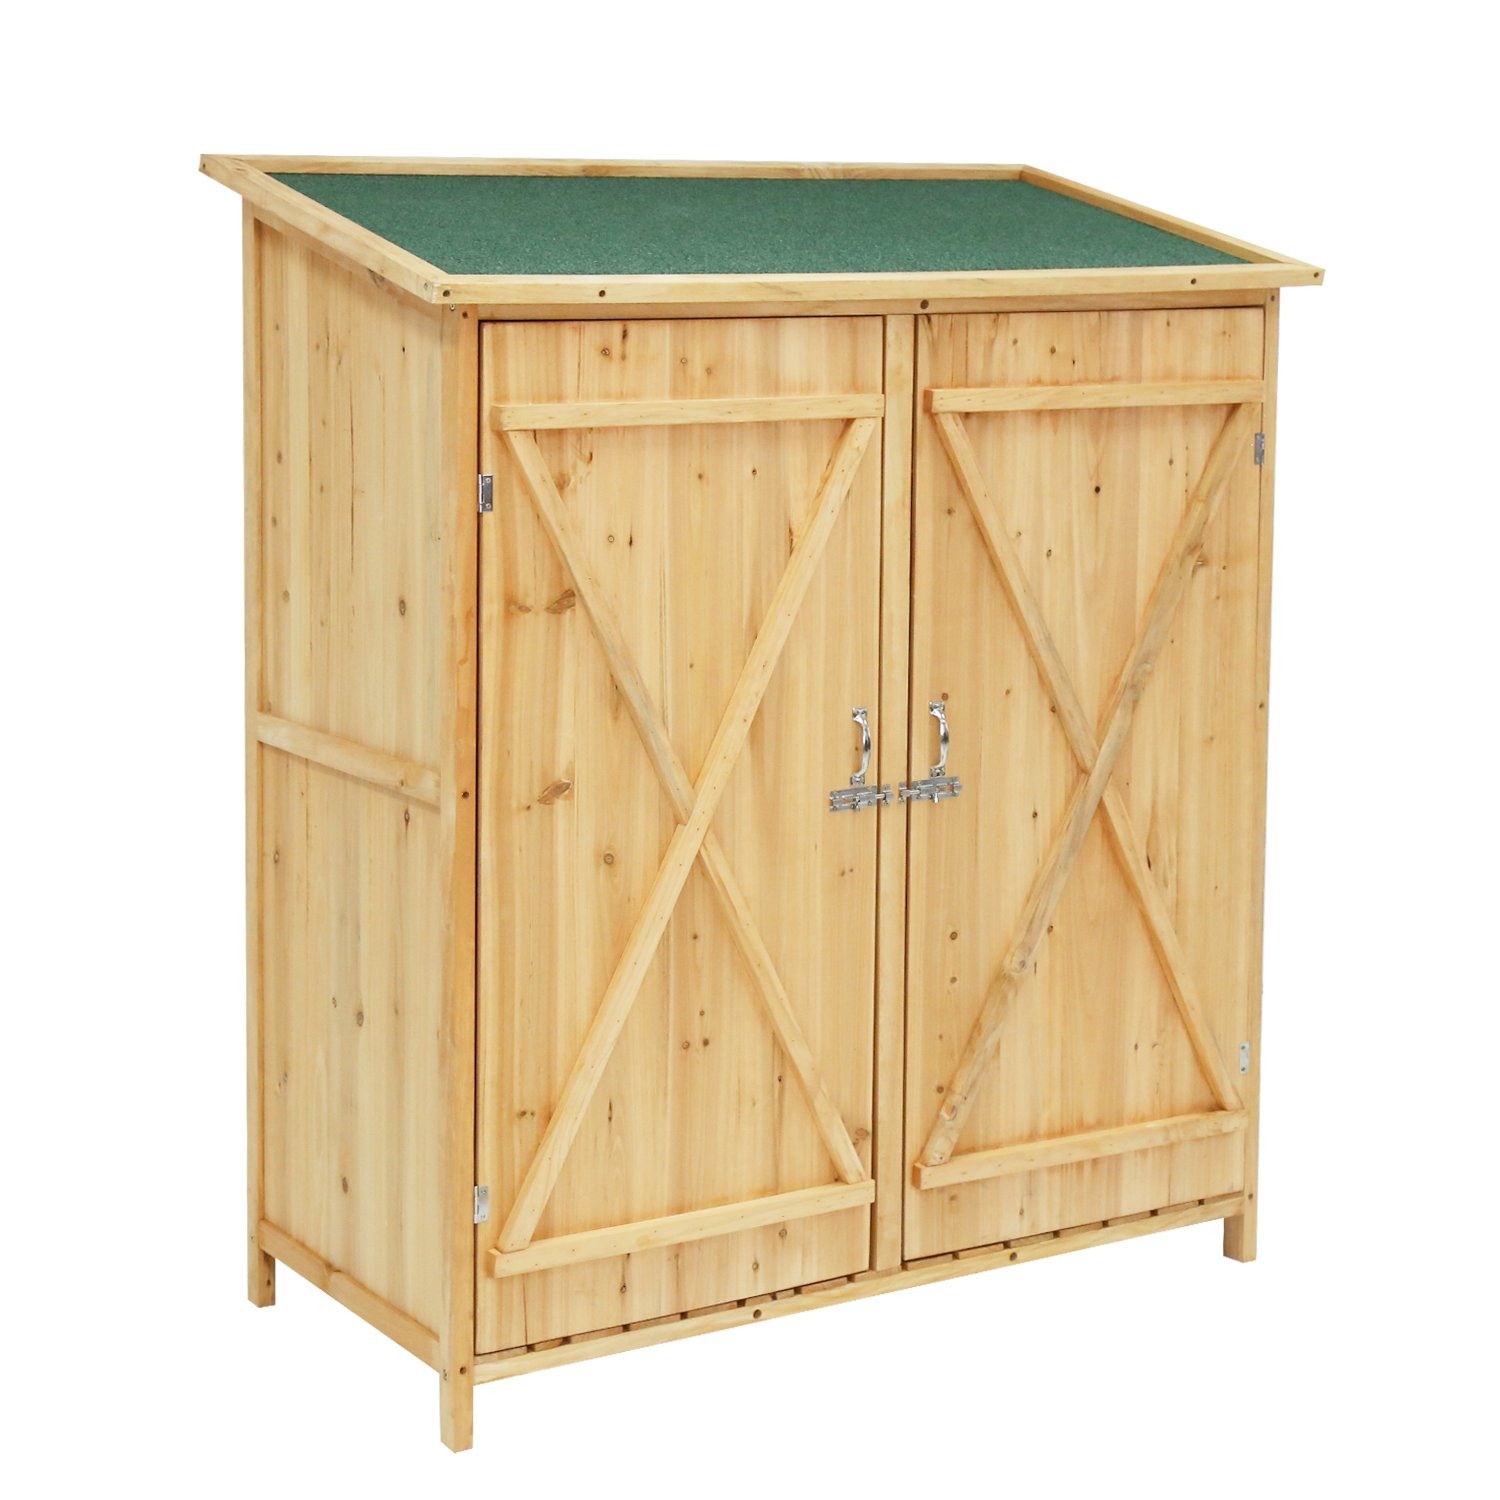 Kinbor Wood Shed Garden Storage Shed Lockable with Double Doors and Chair